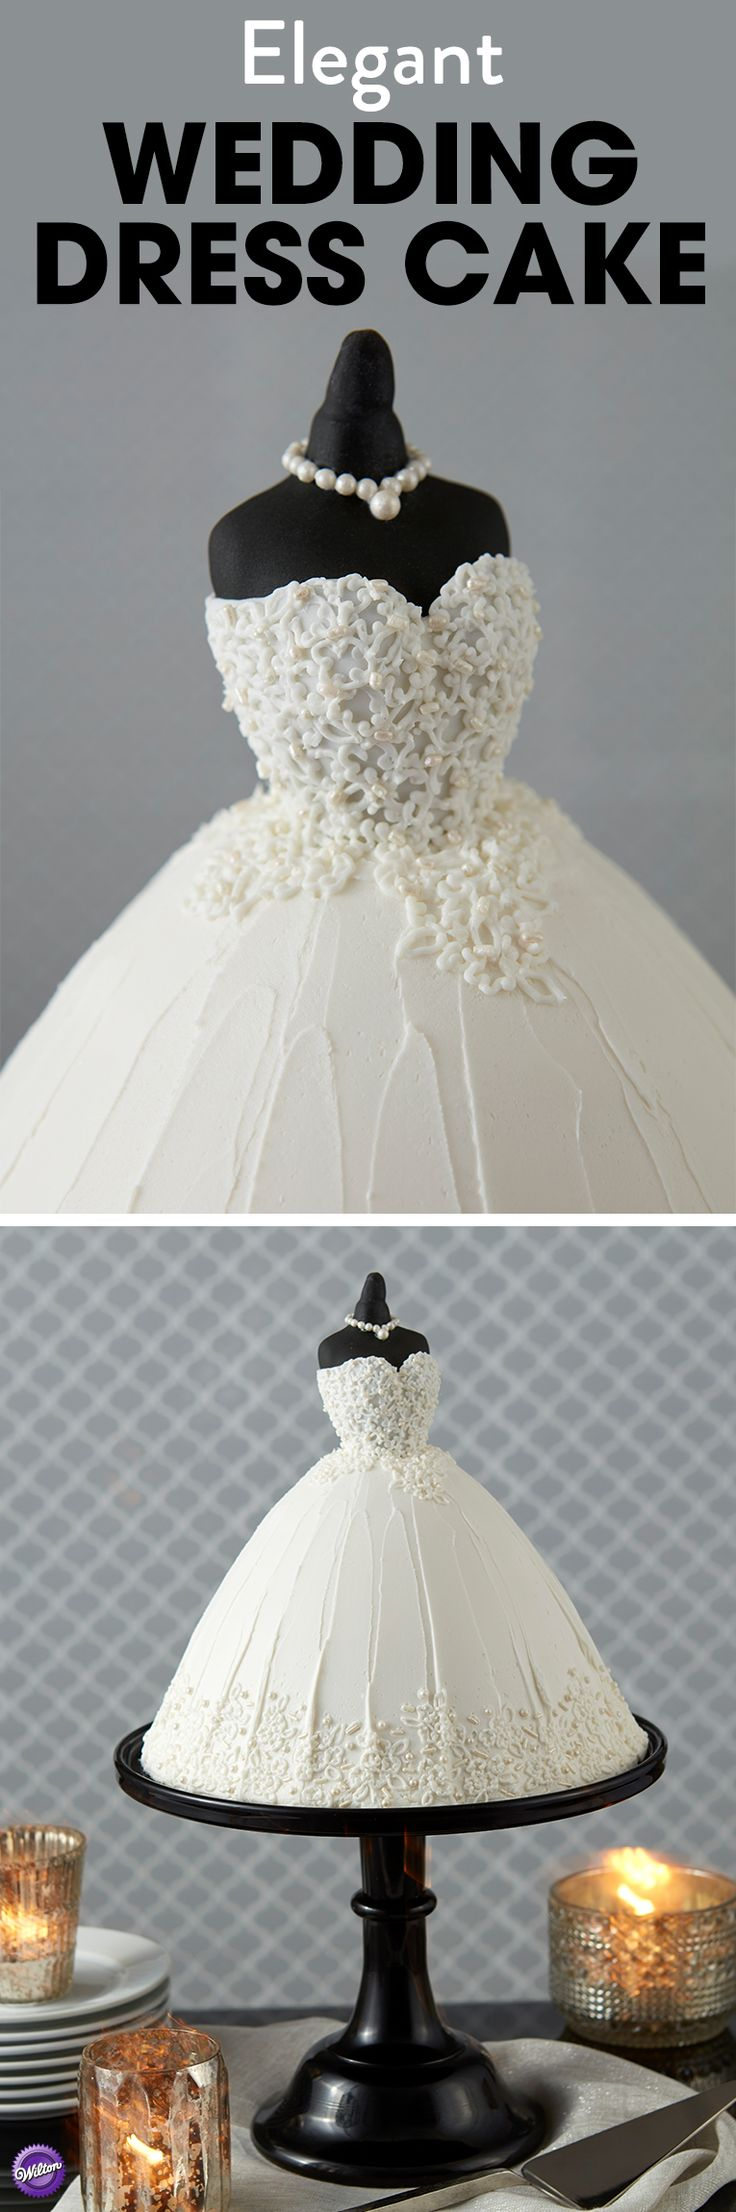 Best 25 wedding dress cupcakes ideas on pinterest for Dress for wedding shower